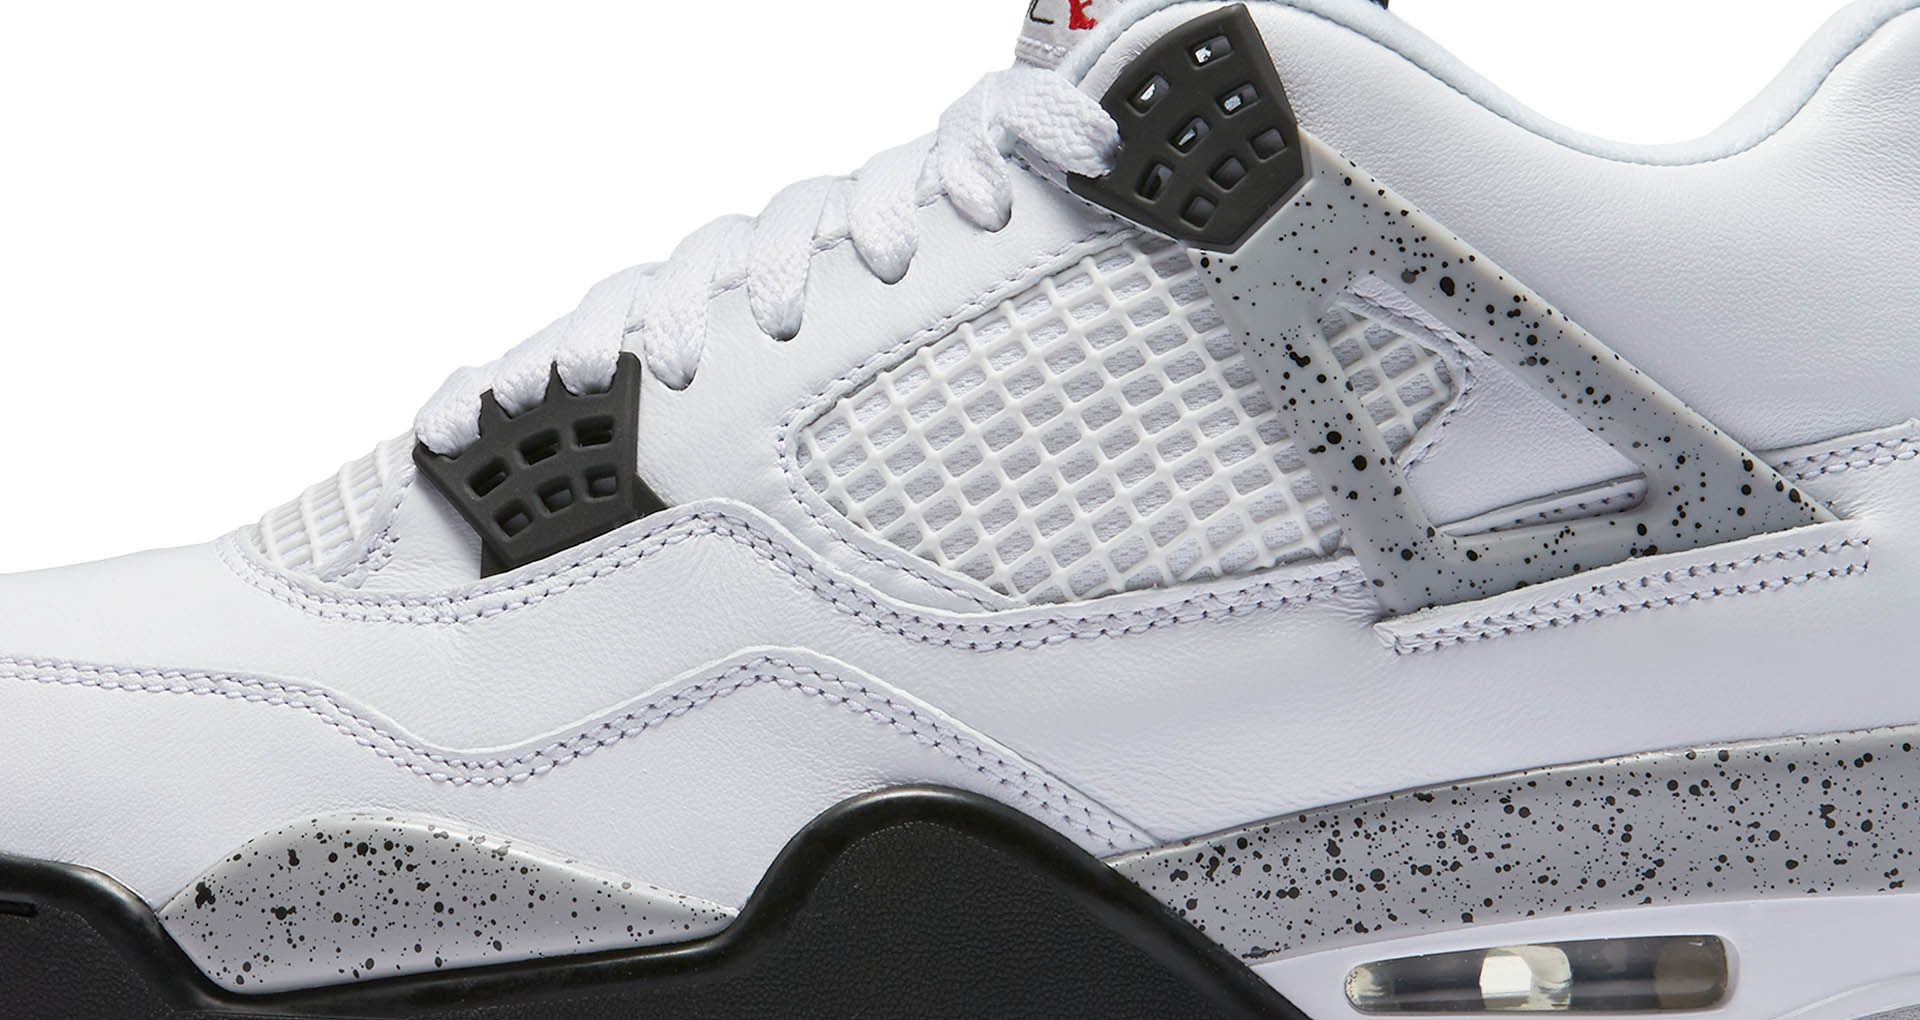 quality design 418e5 912f9 Air Jordan 4 Retro  White Cement Grey  Release Date